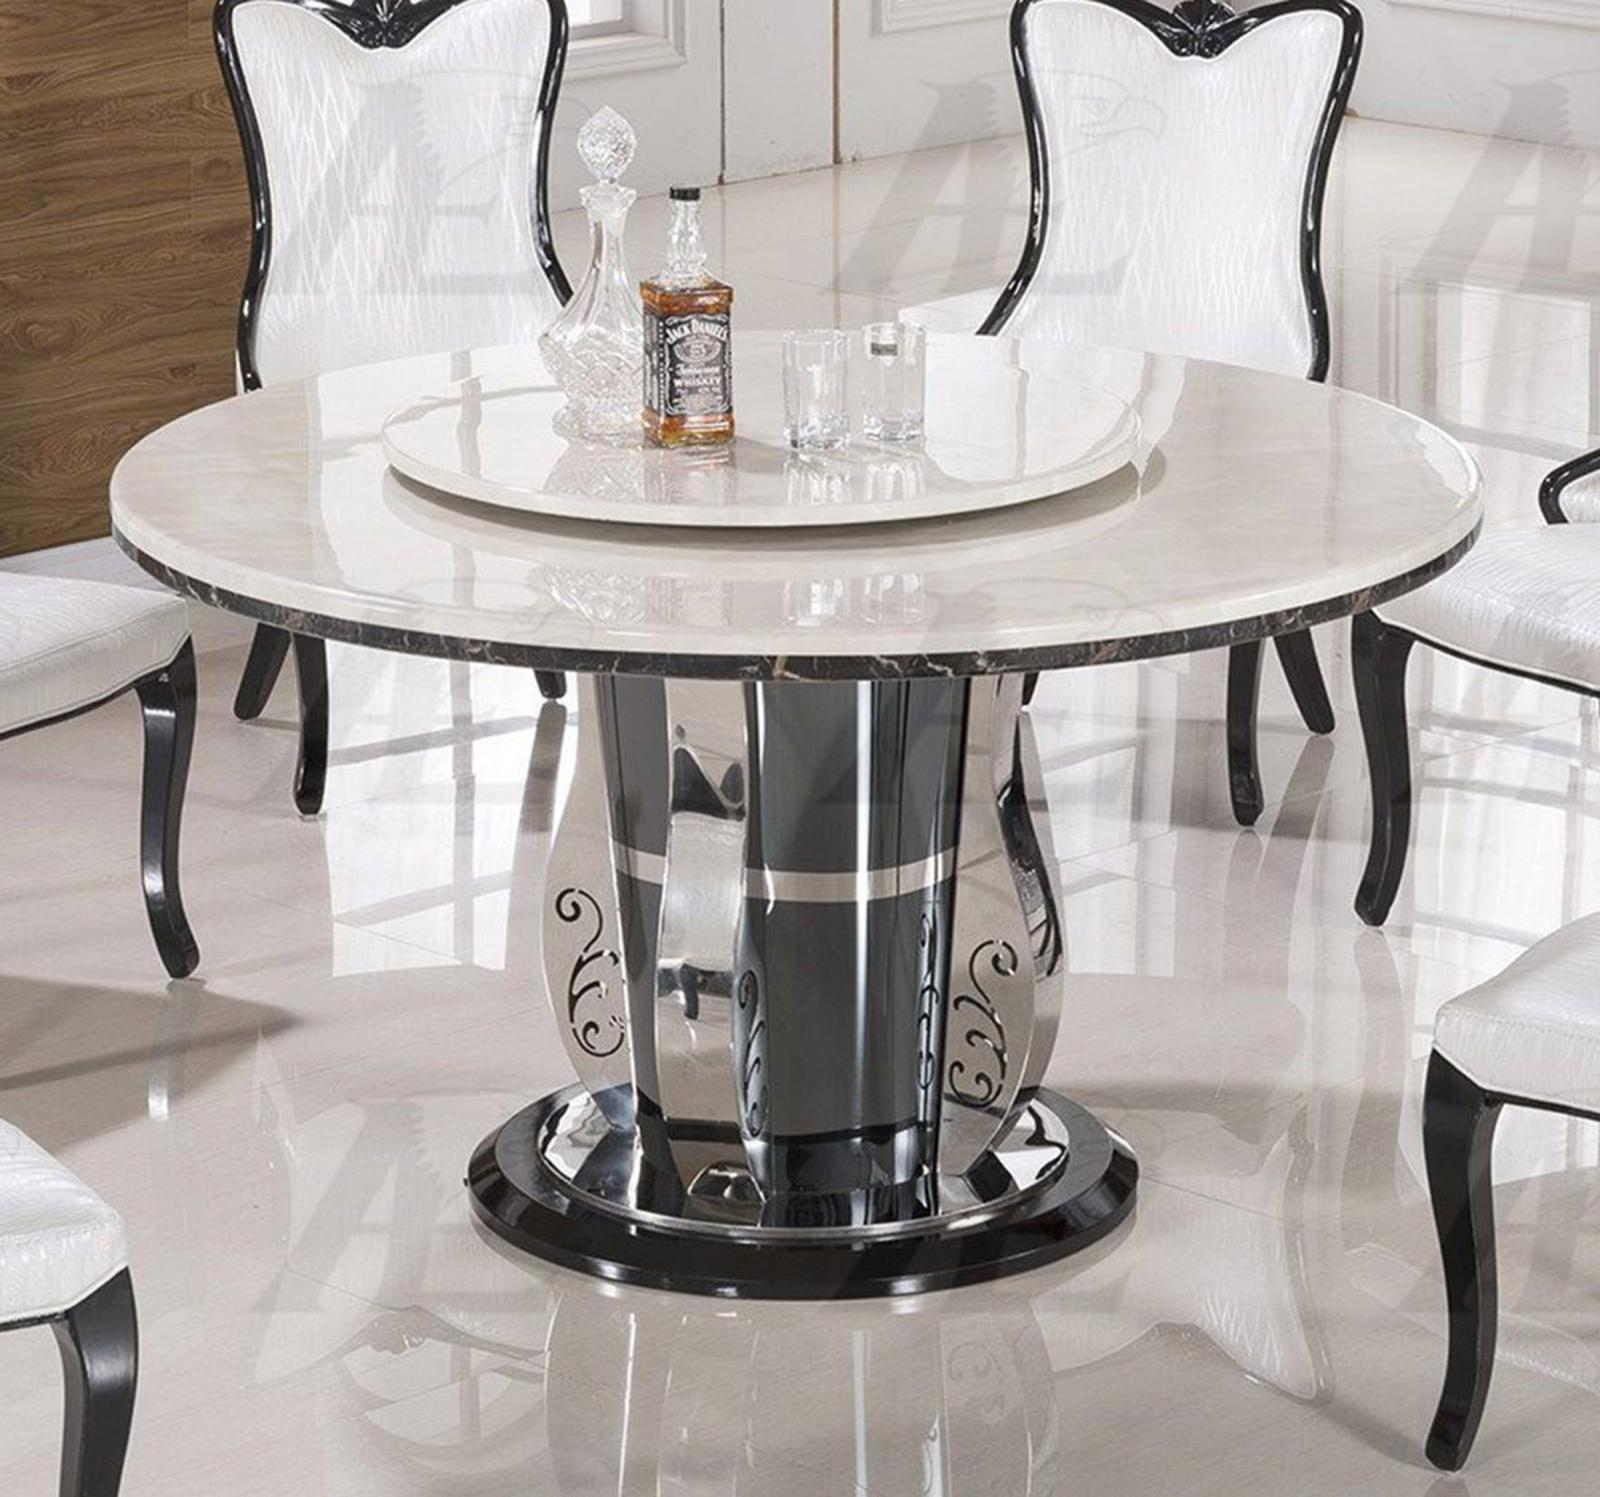 Round Marble Top Dining Table White Marble Top Round Dining Set Shop For Affordable